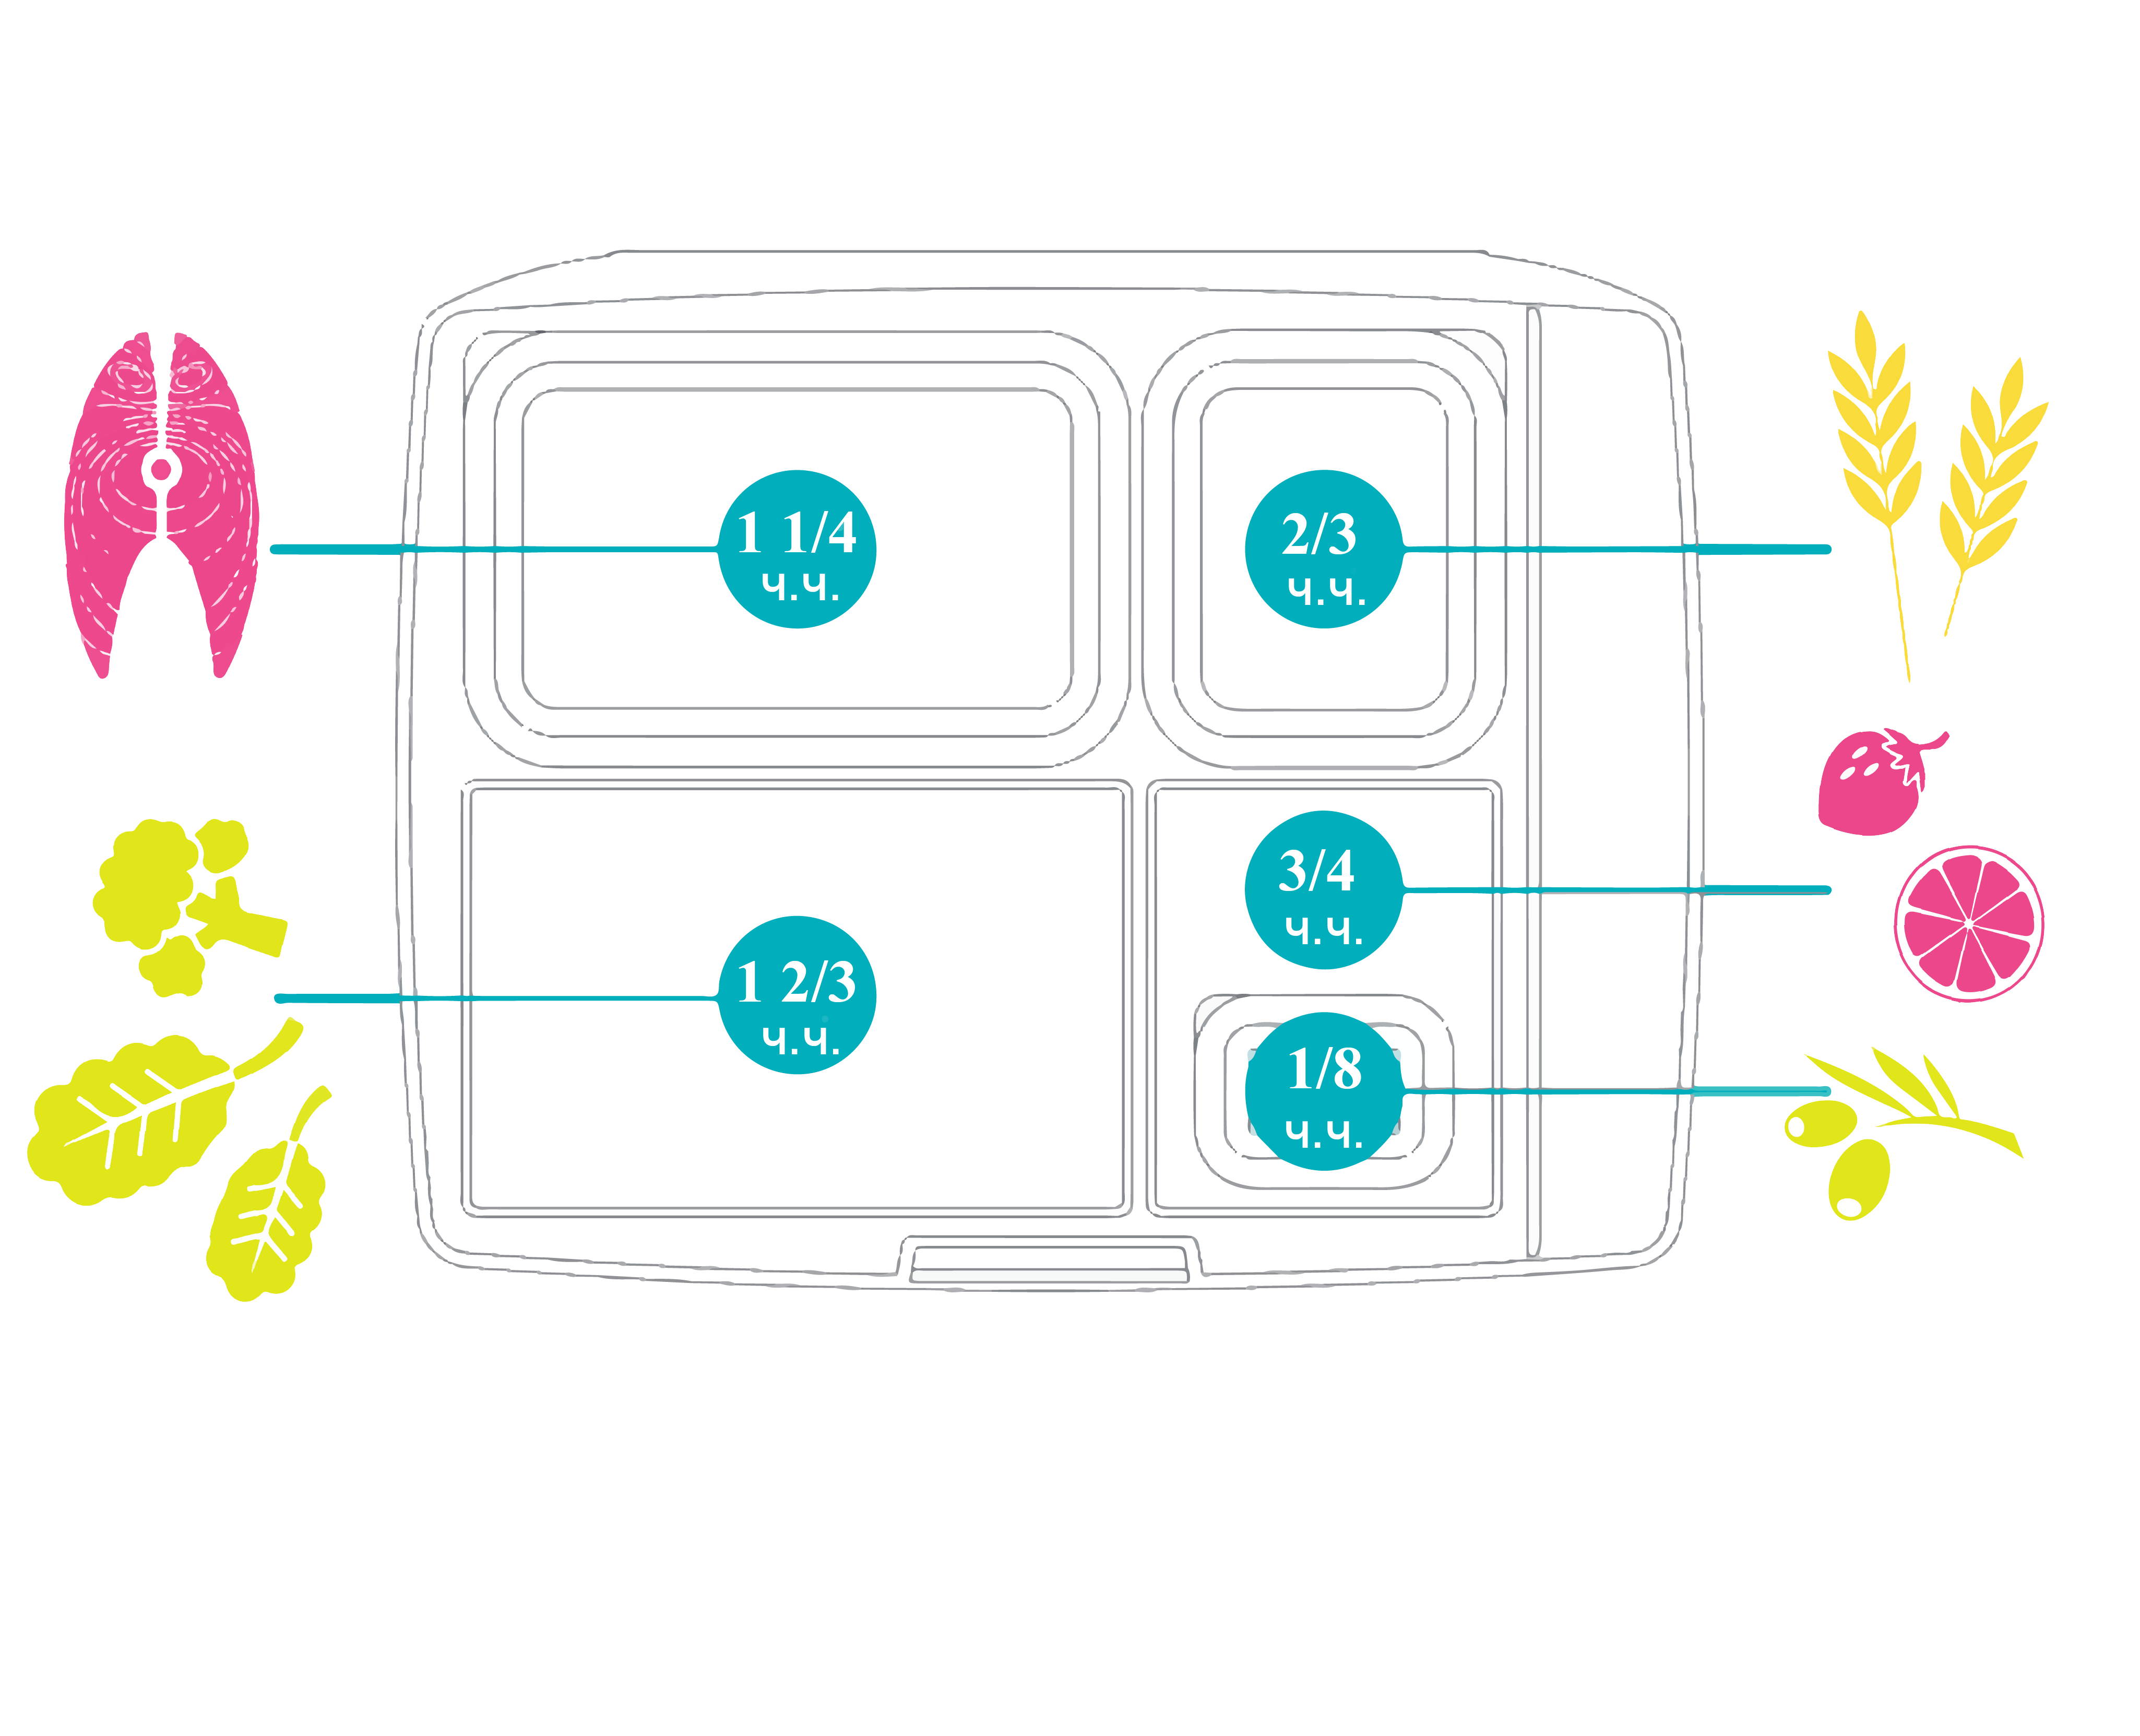 Portion Control Design for Lunchbox